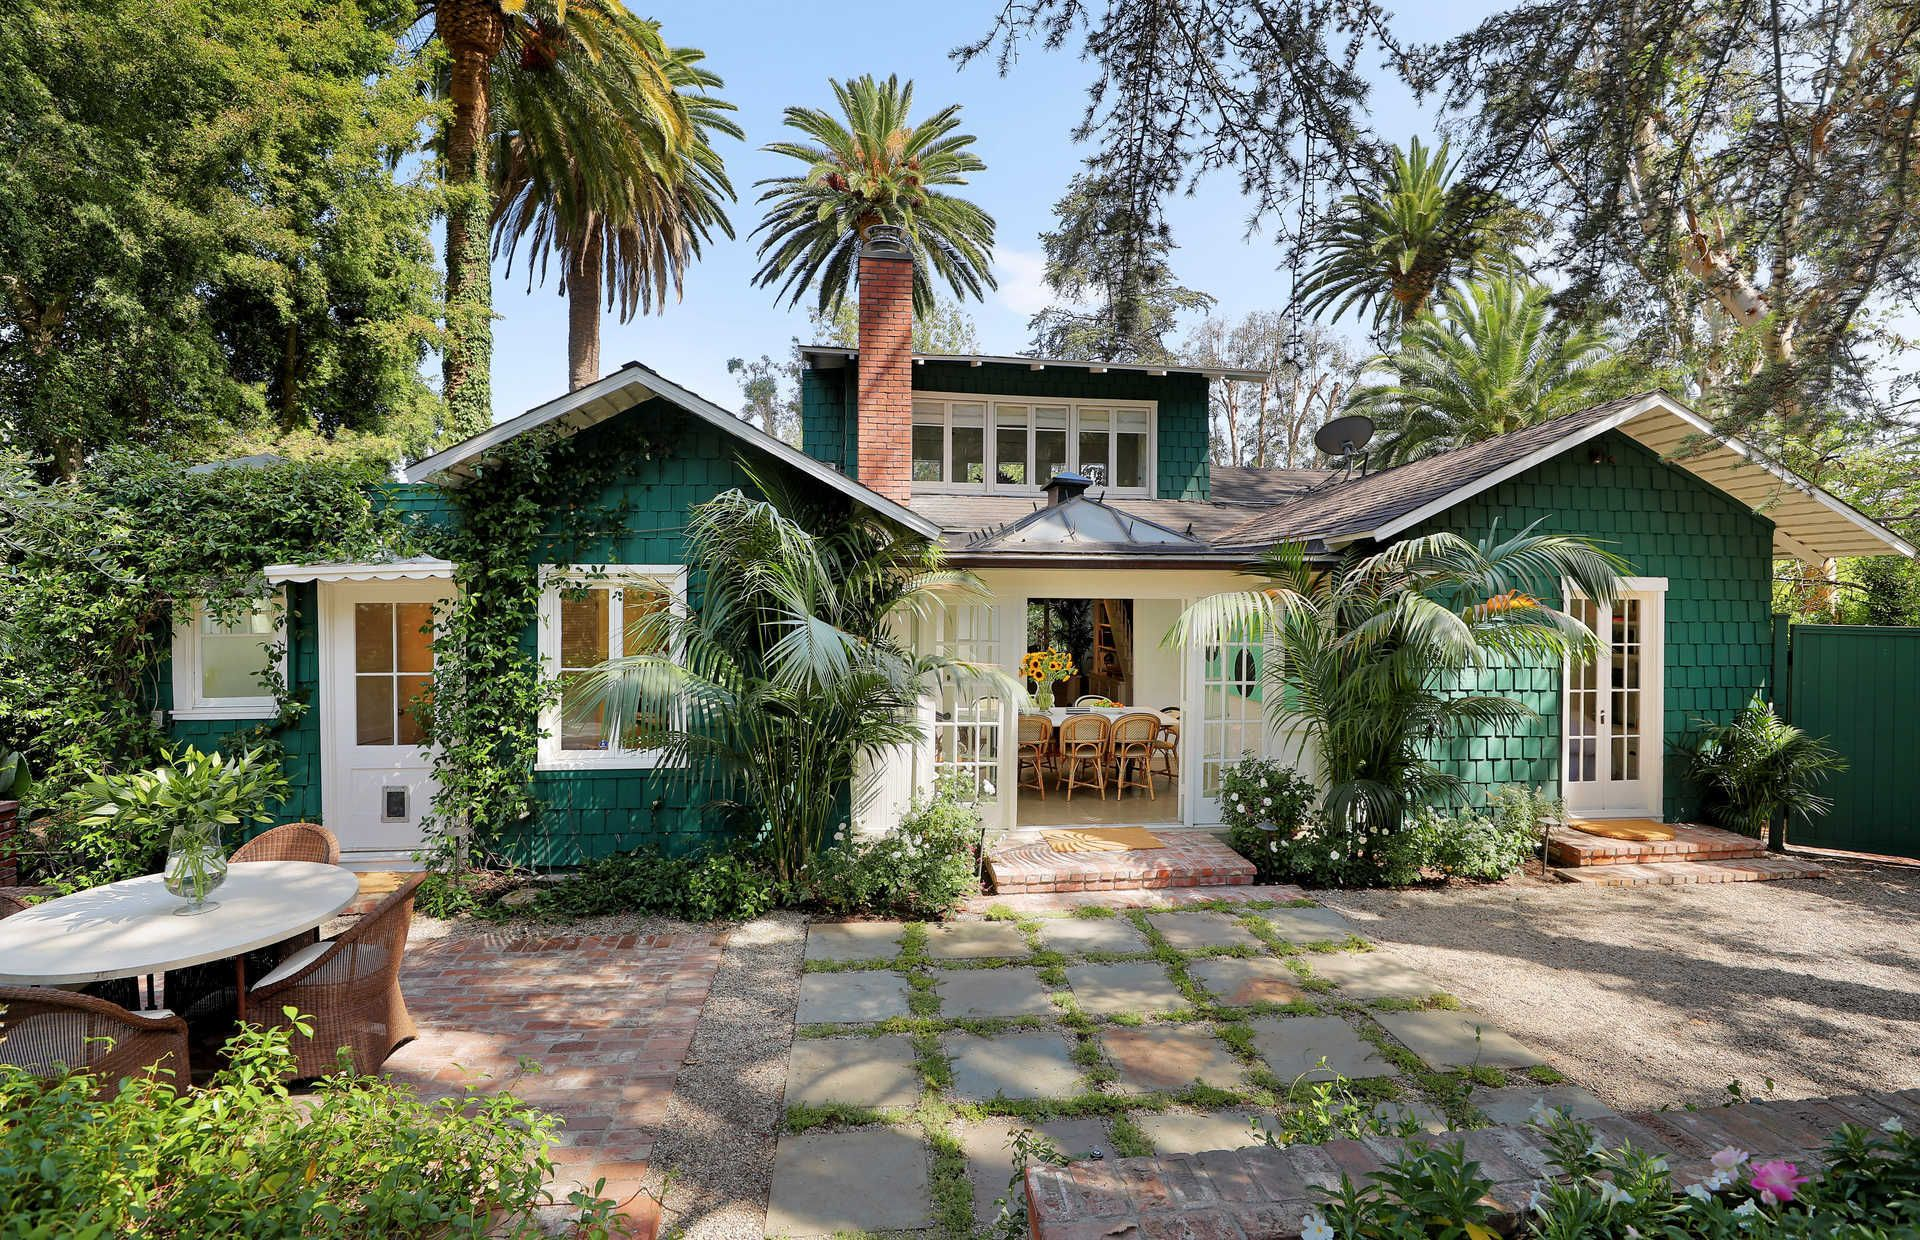 A Classic Craftsman Bungalow Charms in the Hollywood Hills